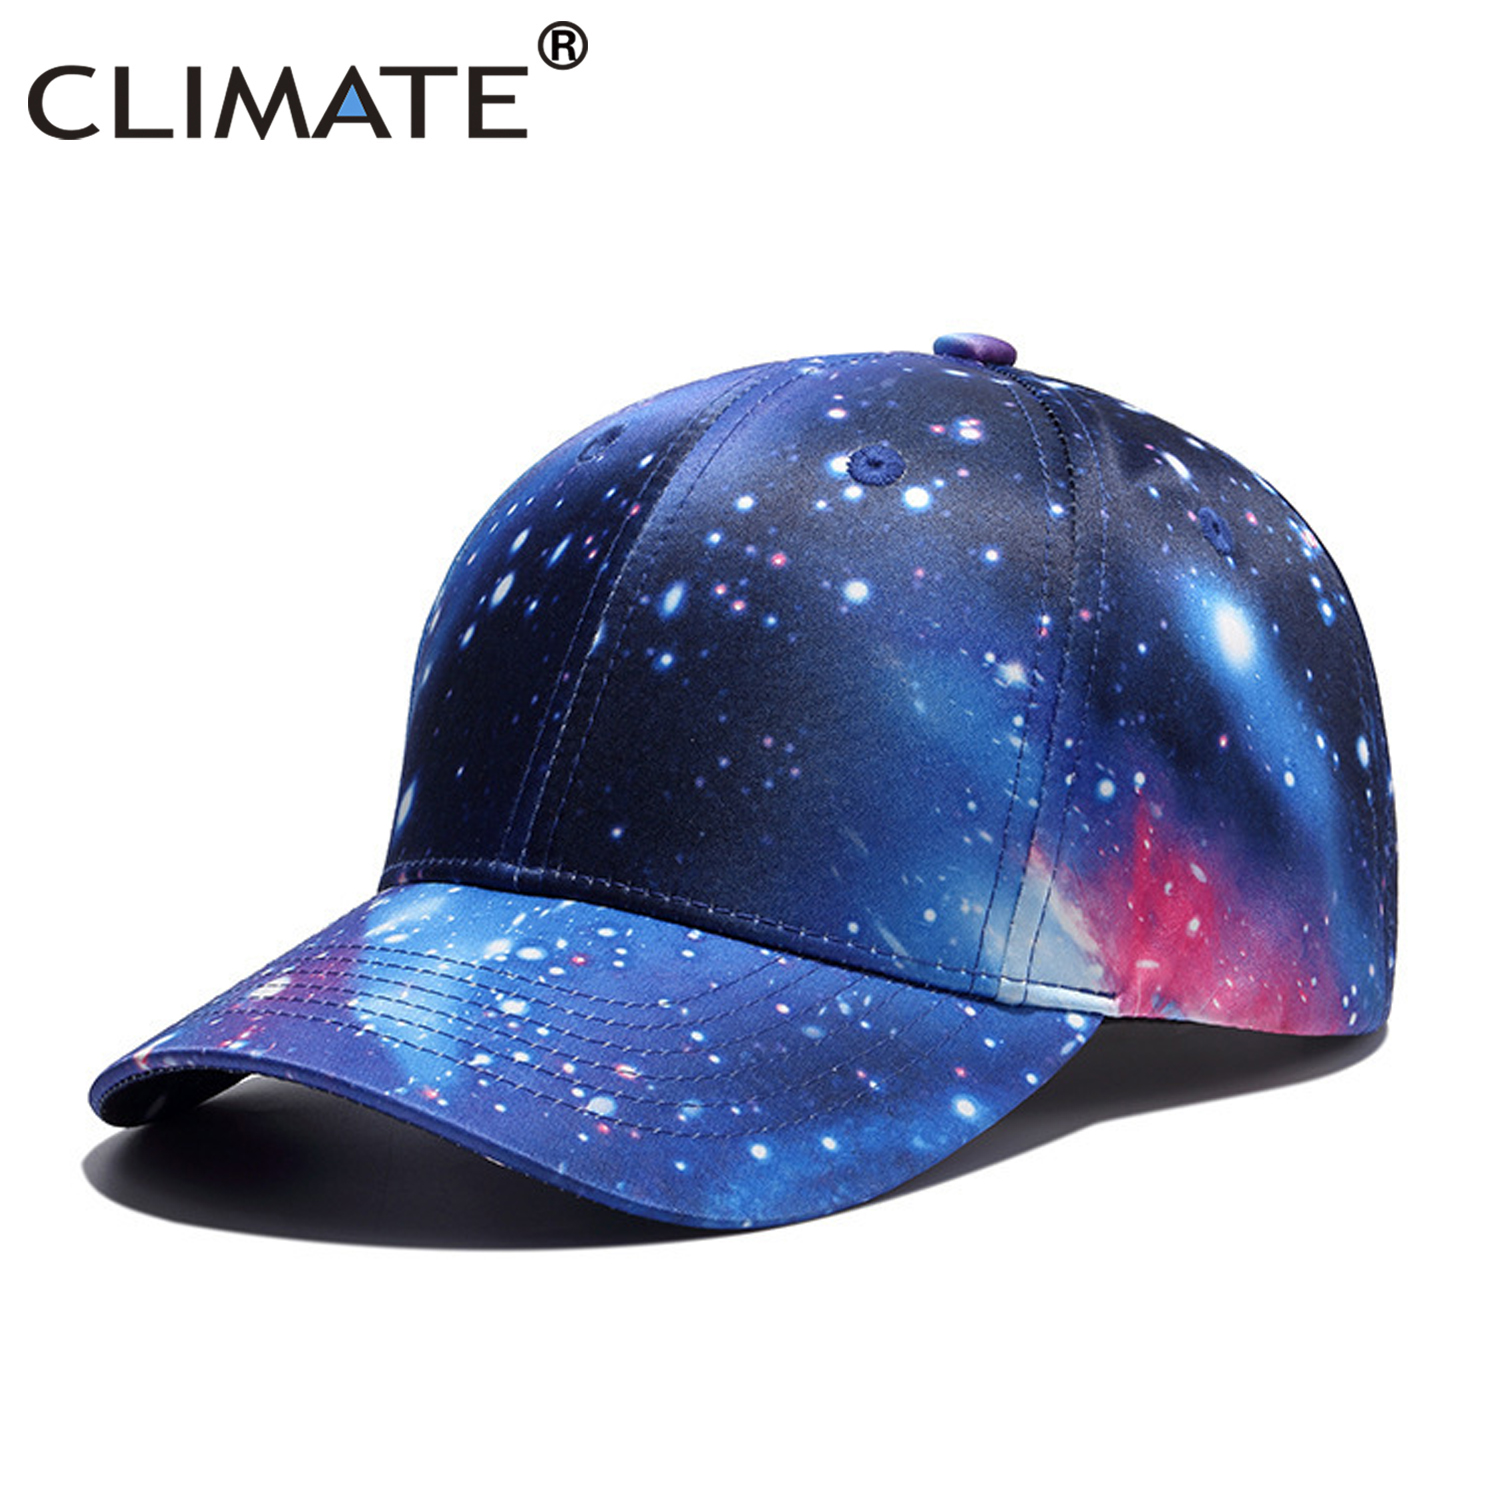 Detail Feedback Questions about CLIMATE 3D Printing Baseball Cap Hip Hop  Street Style Cap Hat Rapper Outer Space Galaxy Caps Street Dancer Dance Caps  Hat ... ff744ccdc911